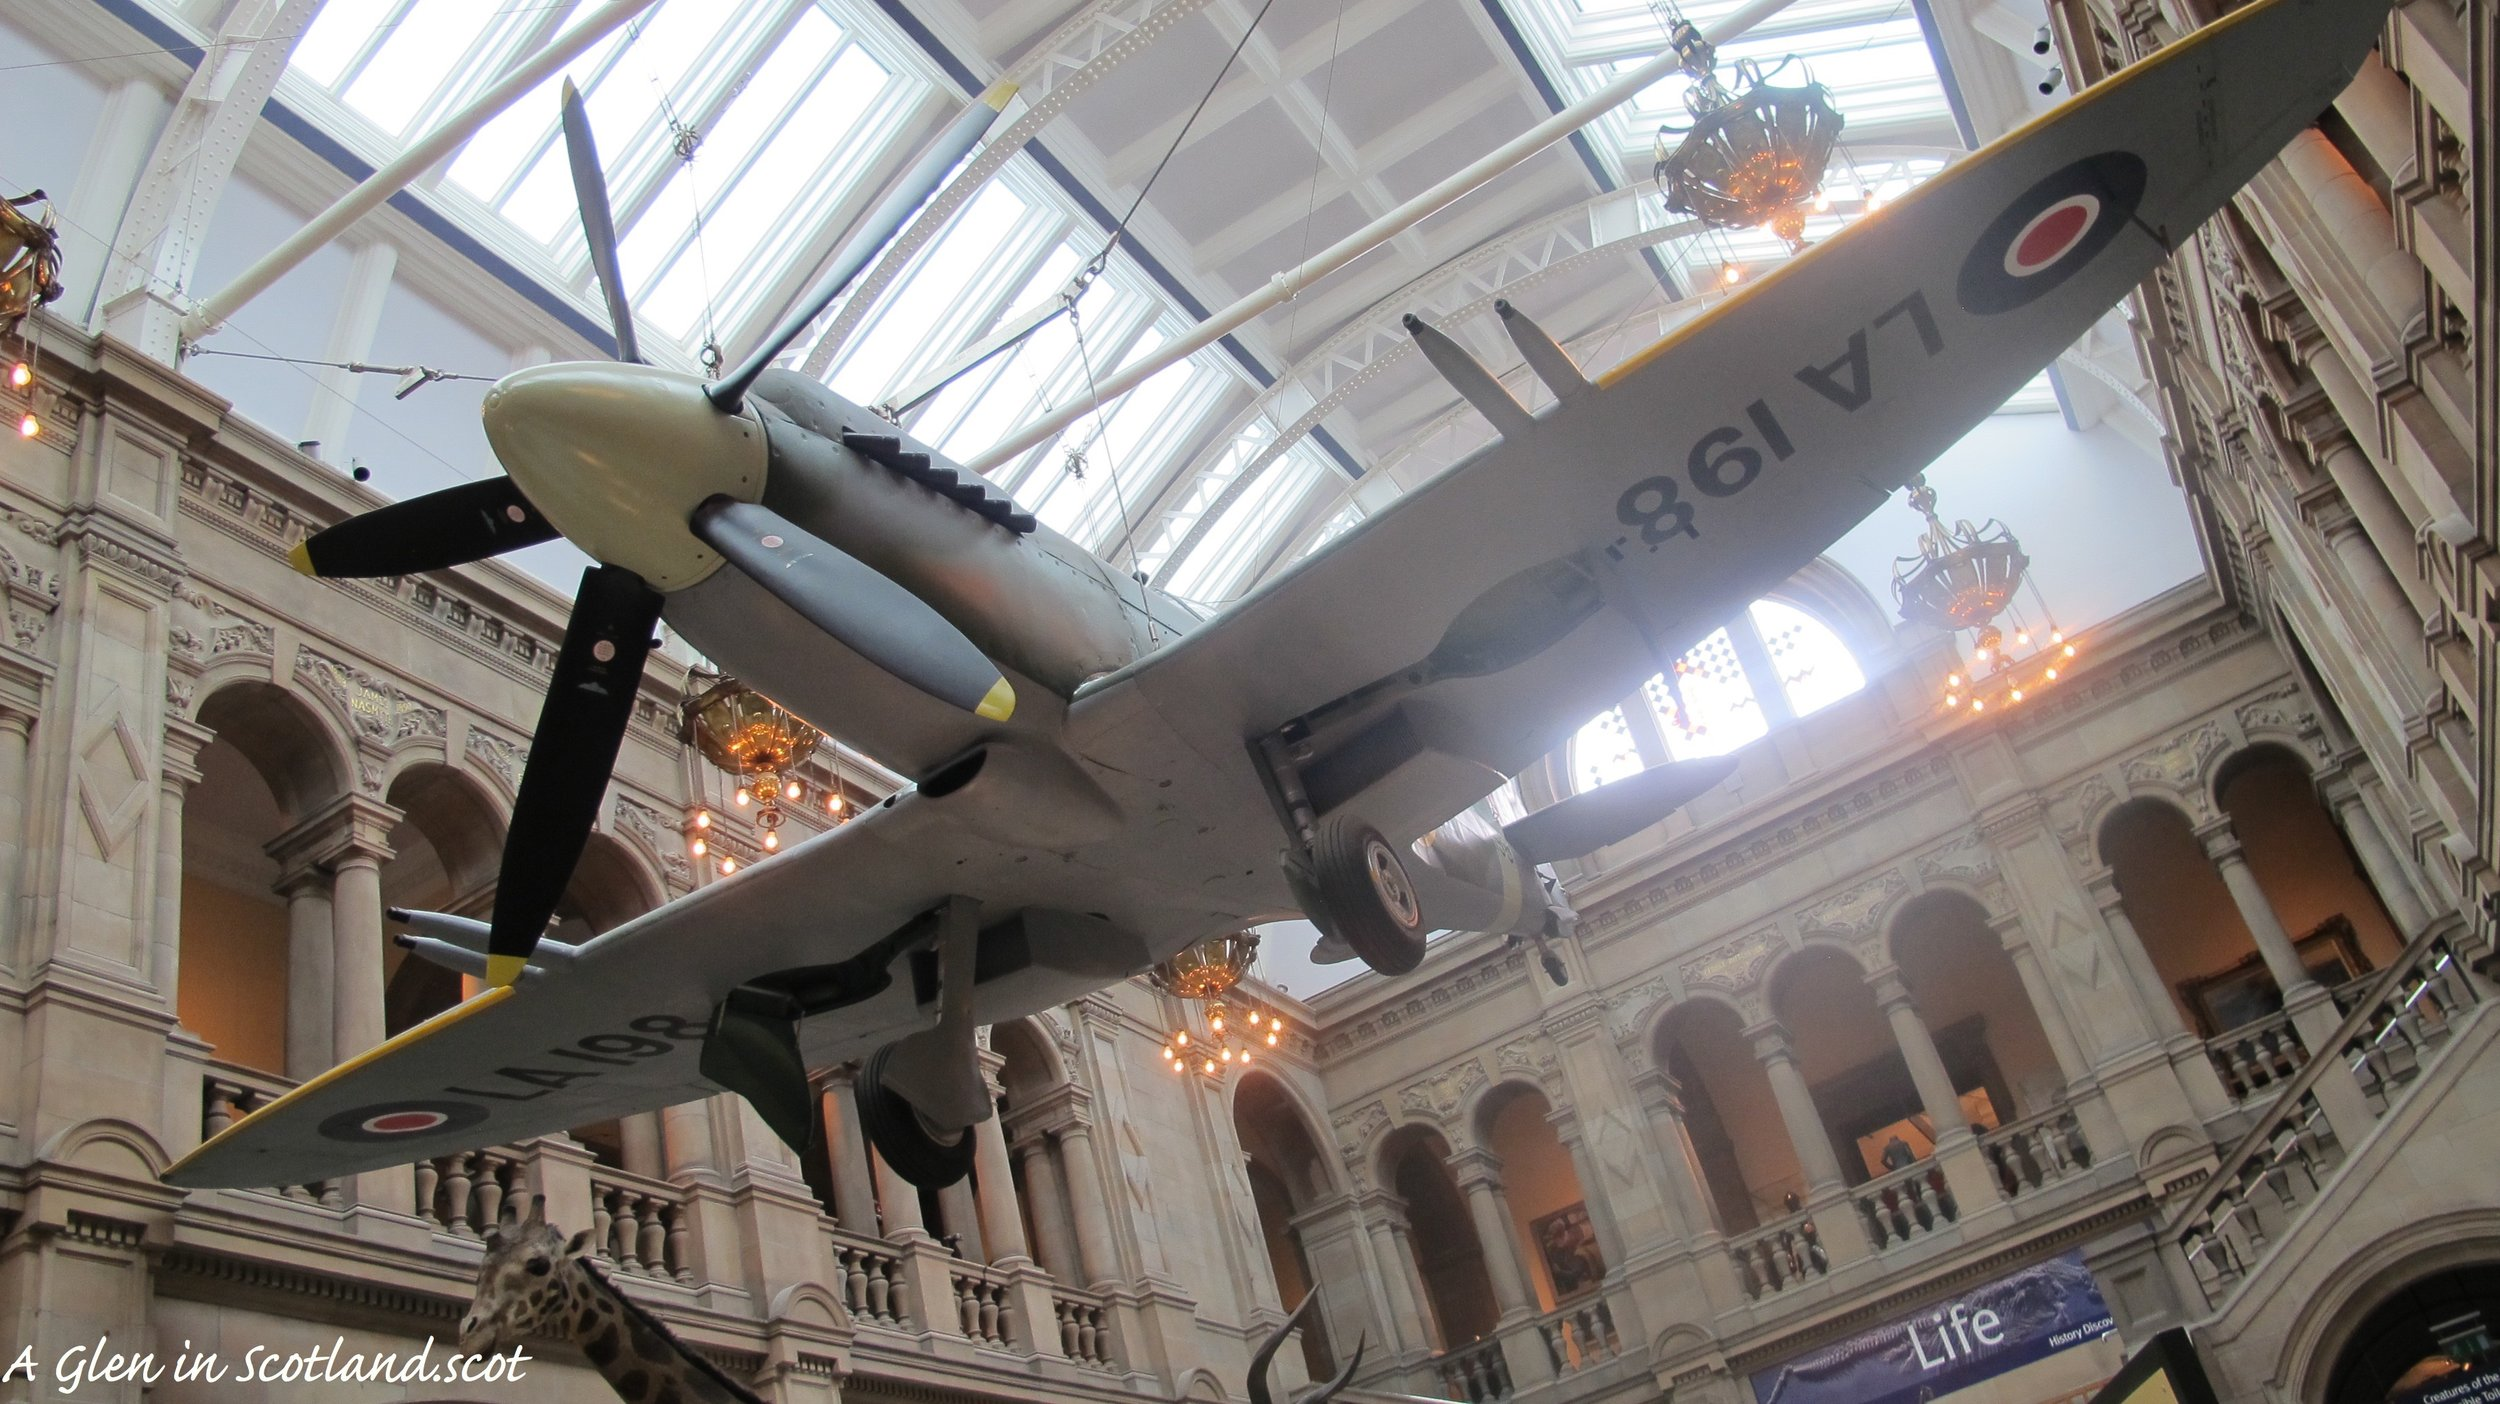 Spitfire at the Kelvingrove